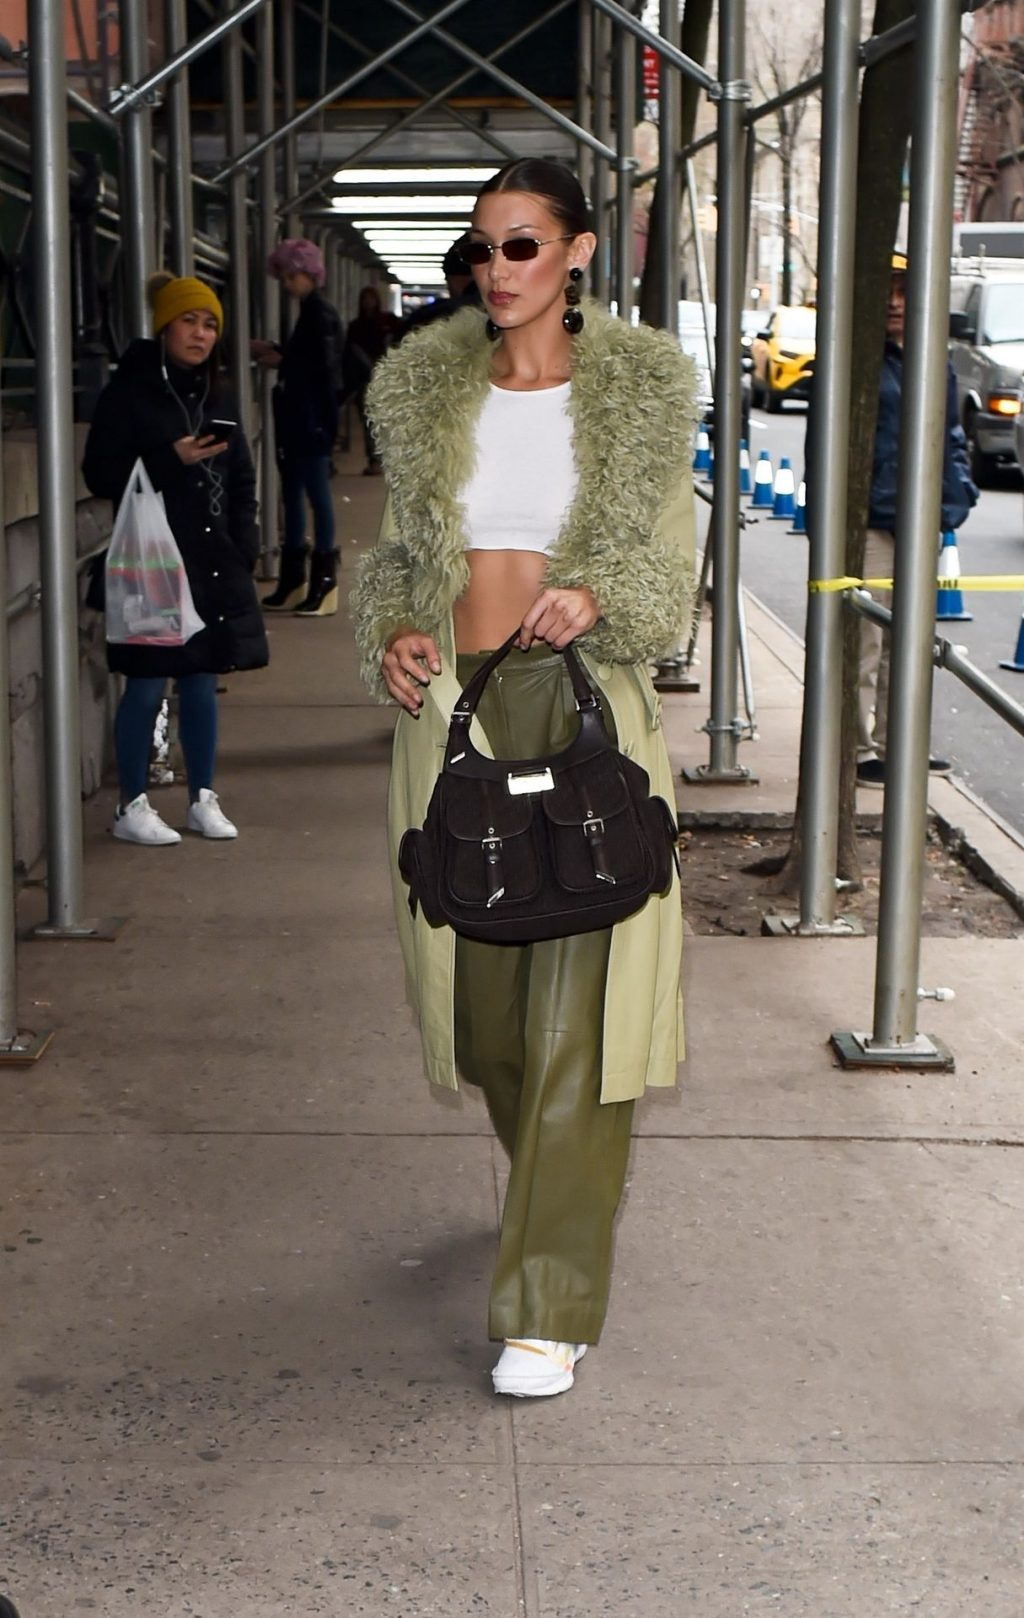 Bella Hadid See through The Fappening Blog 8 1 1024x1618 - Braless Bella Hadid Arrives at the Park Avenue Armory for the Marc Jacobs Fashion Show (59 Photos)